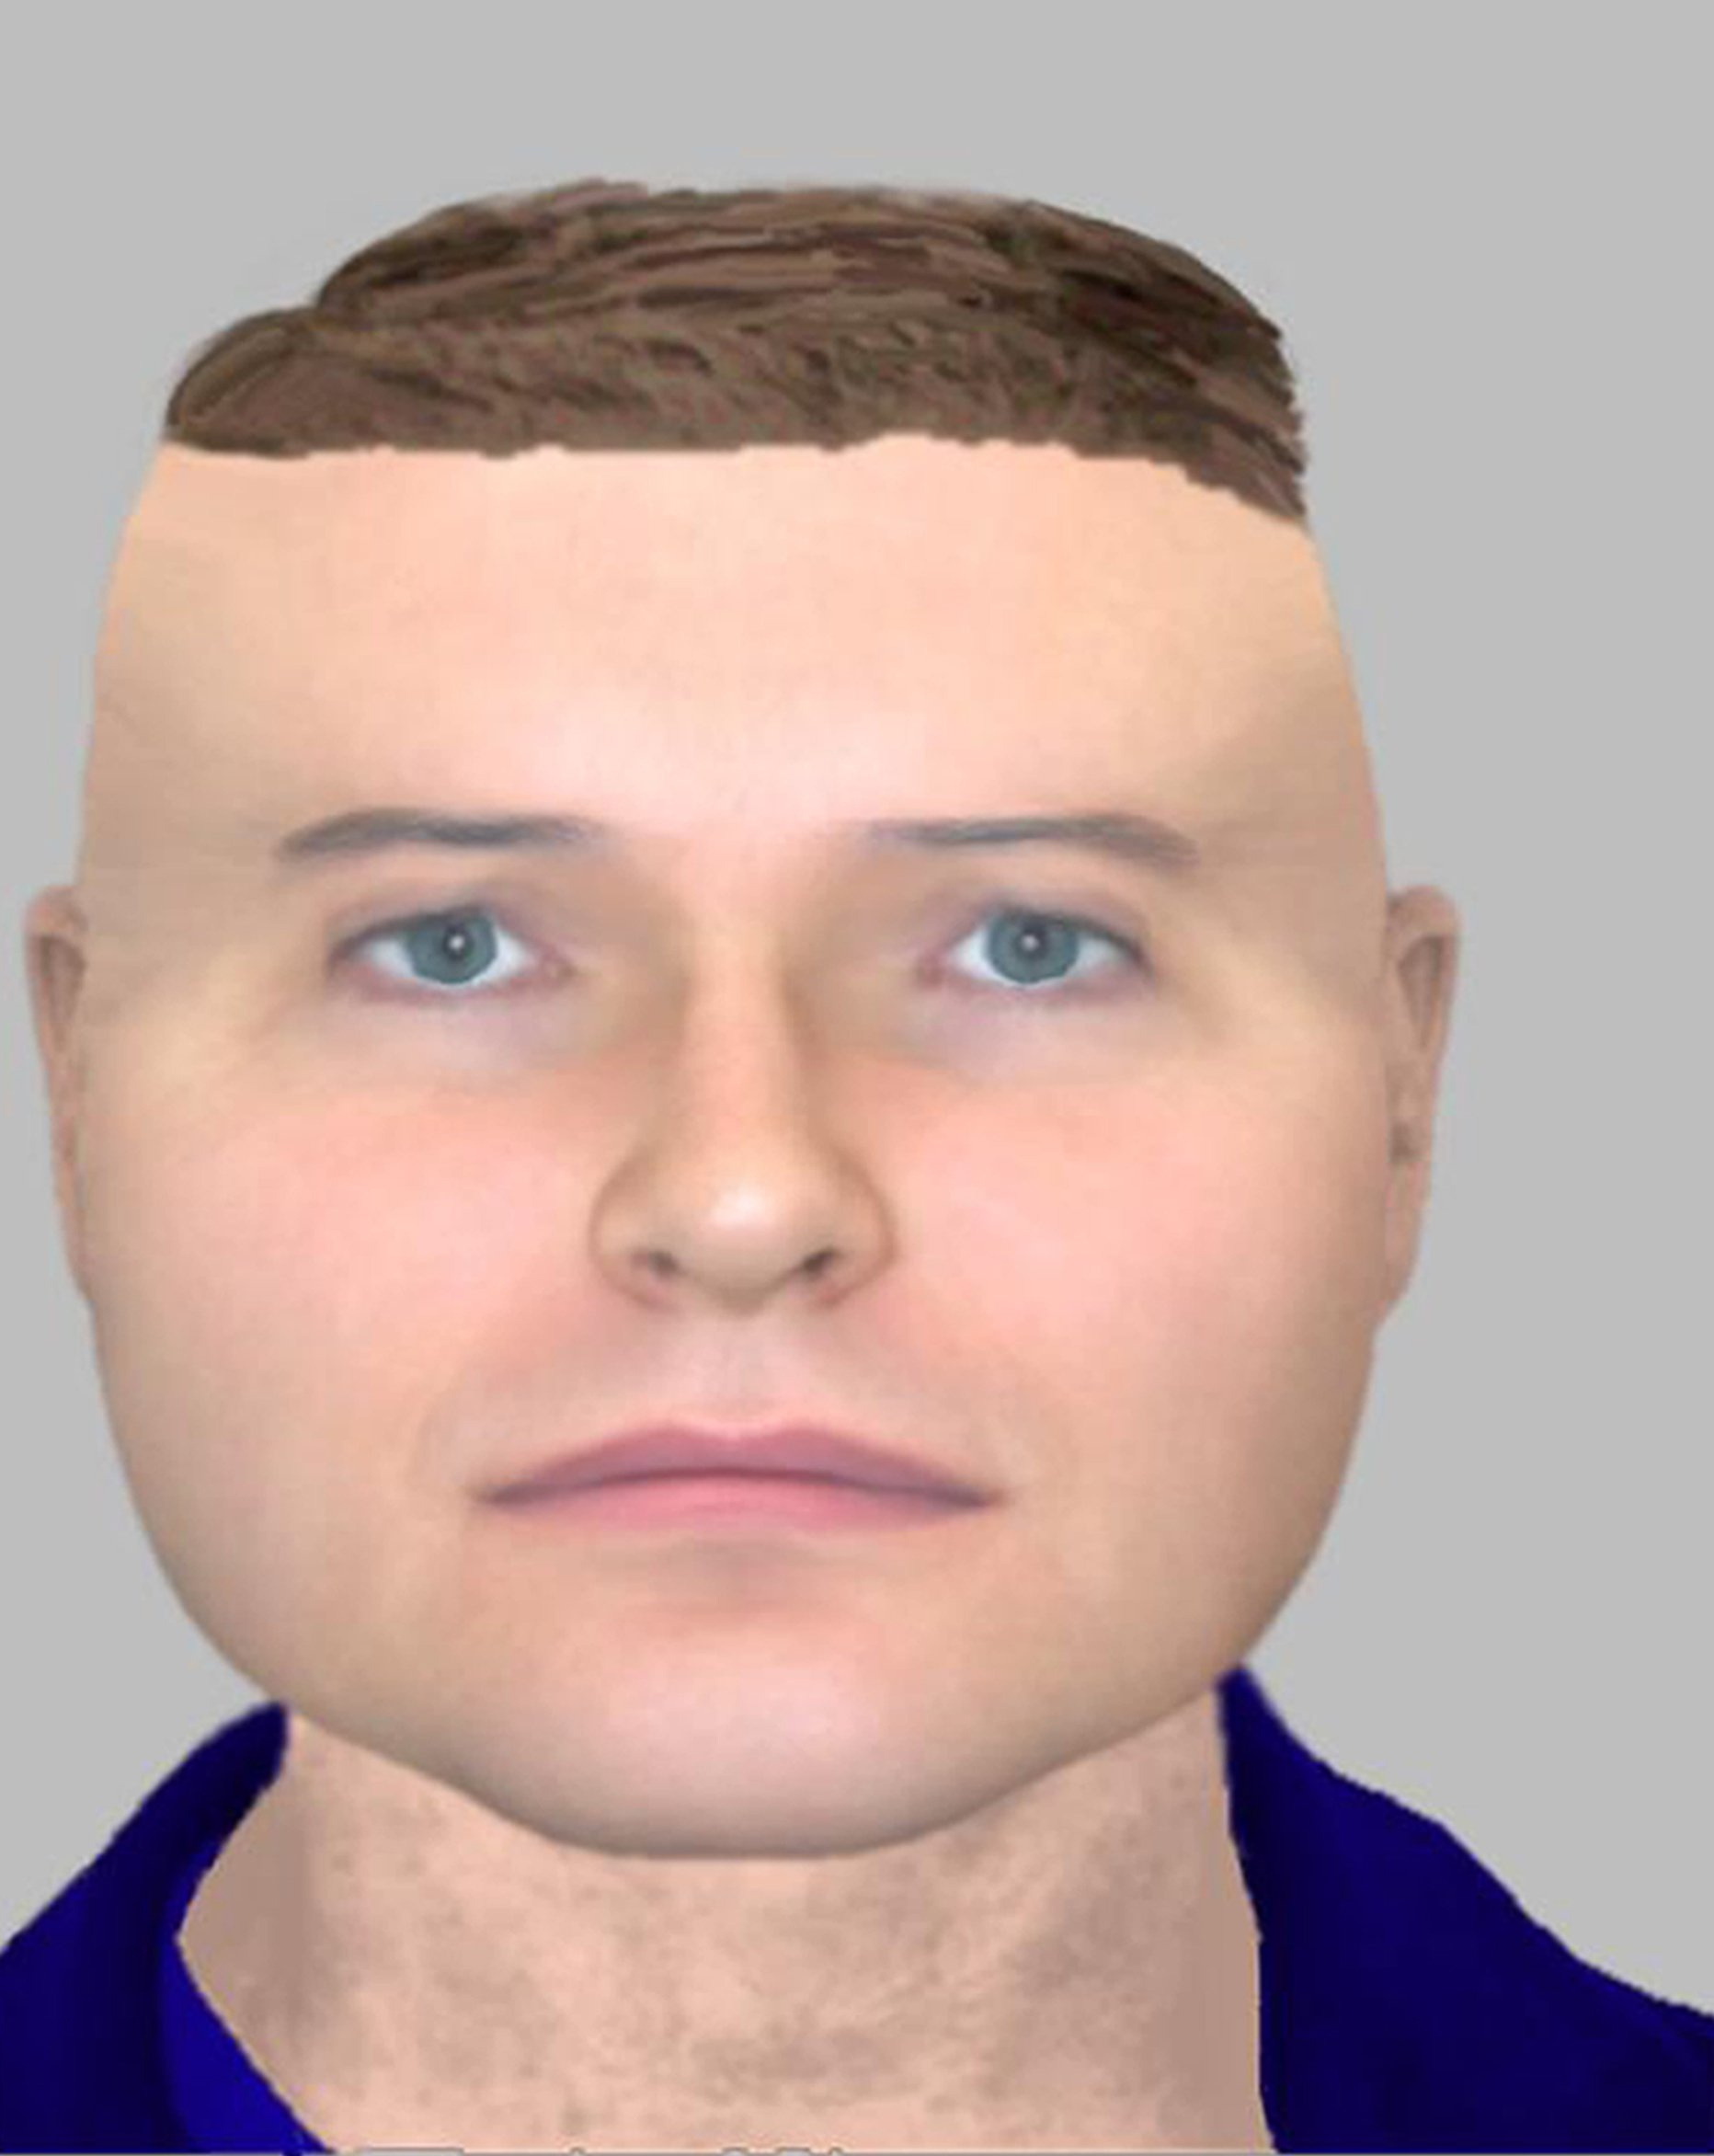 Police mocked for e-fit 'which looks like Lego character'